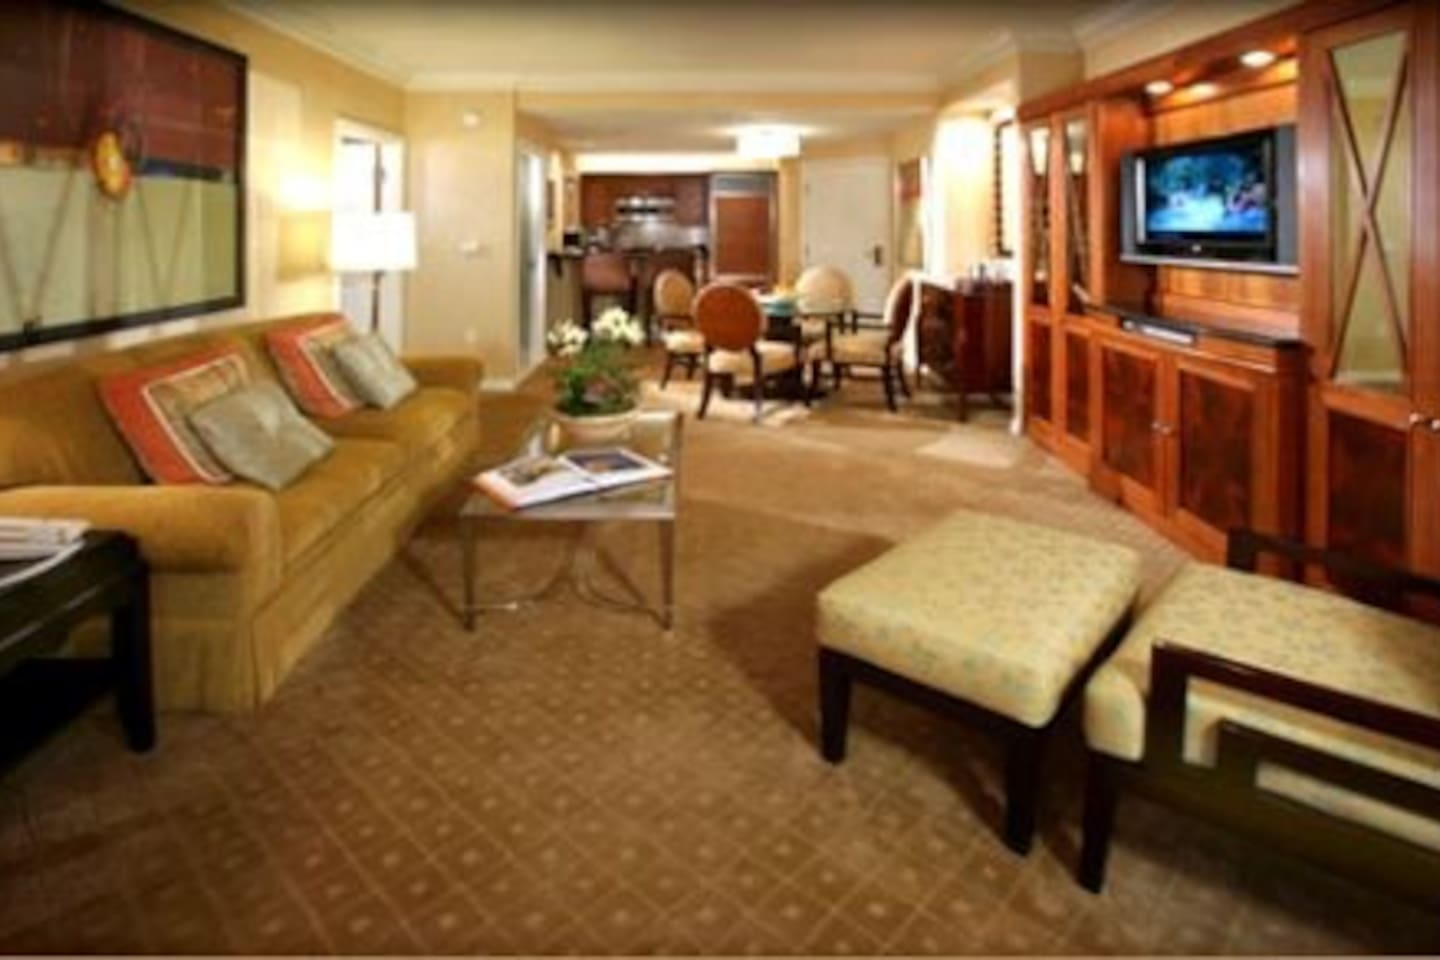 Mgm Grand Signature One Bedroom Balcony Suite Mgm Signature Hotel 1 Bedroom 2 Full Bathroom Condominiums For